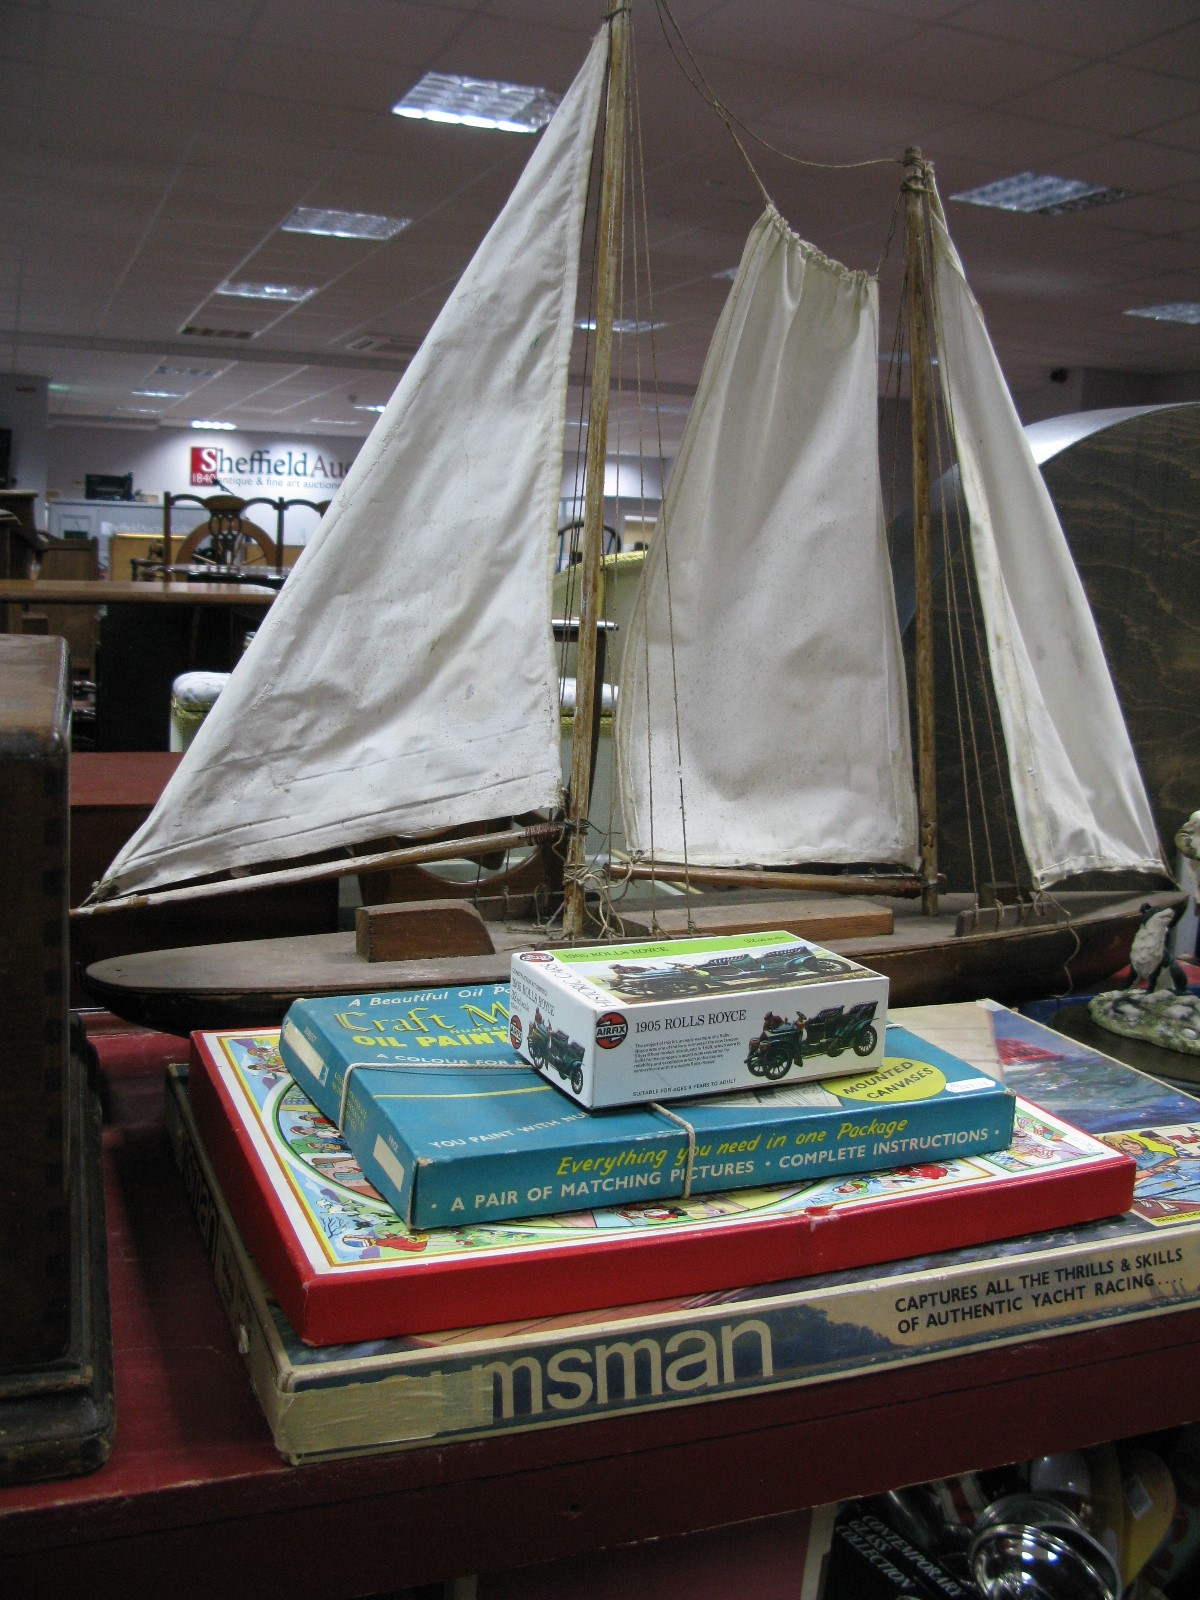 Lot 1058 - A Child's Wooden Sailing Boat, canvas sails, length 93cm, Triang 'Helmsman' game, Airfix 1905